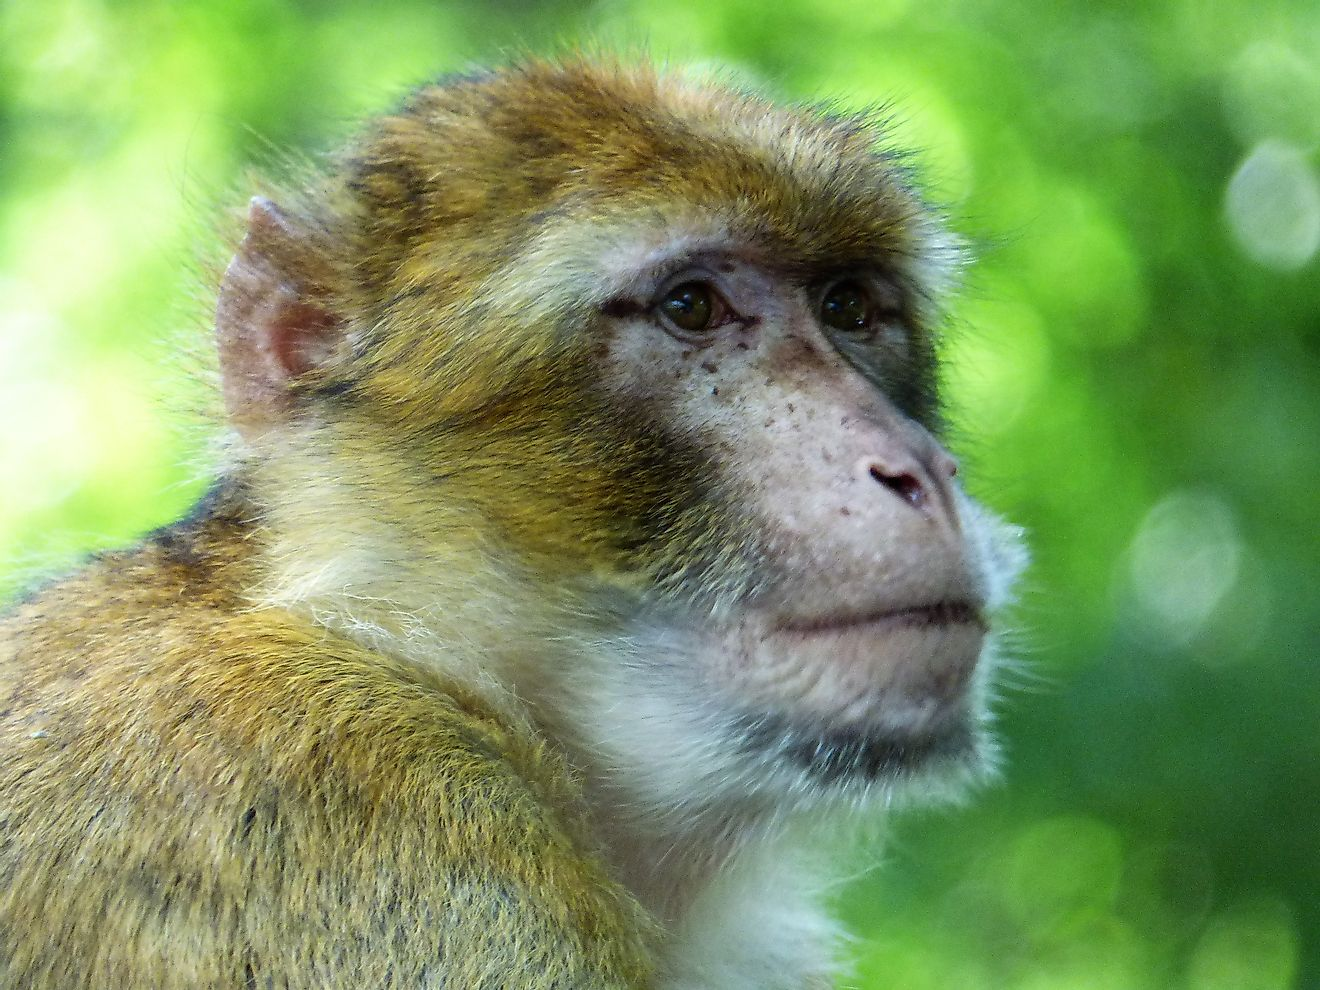 The barbary macaque is a mammal that can be found in Algeria.